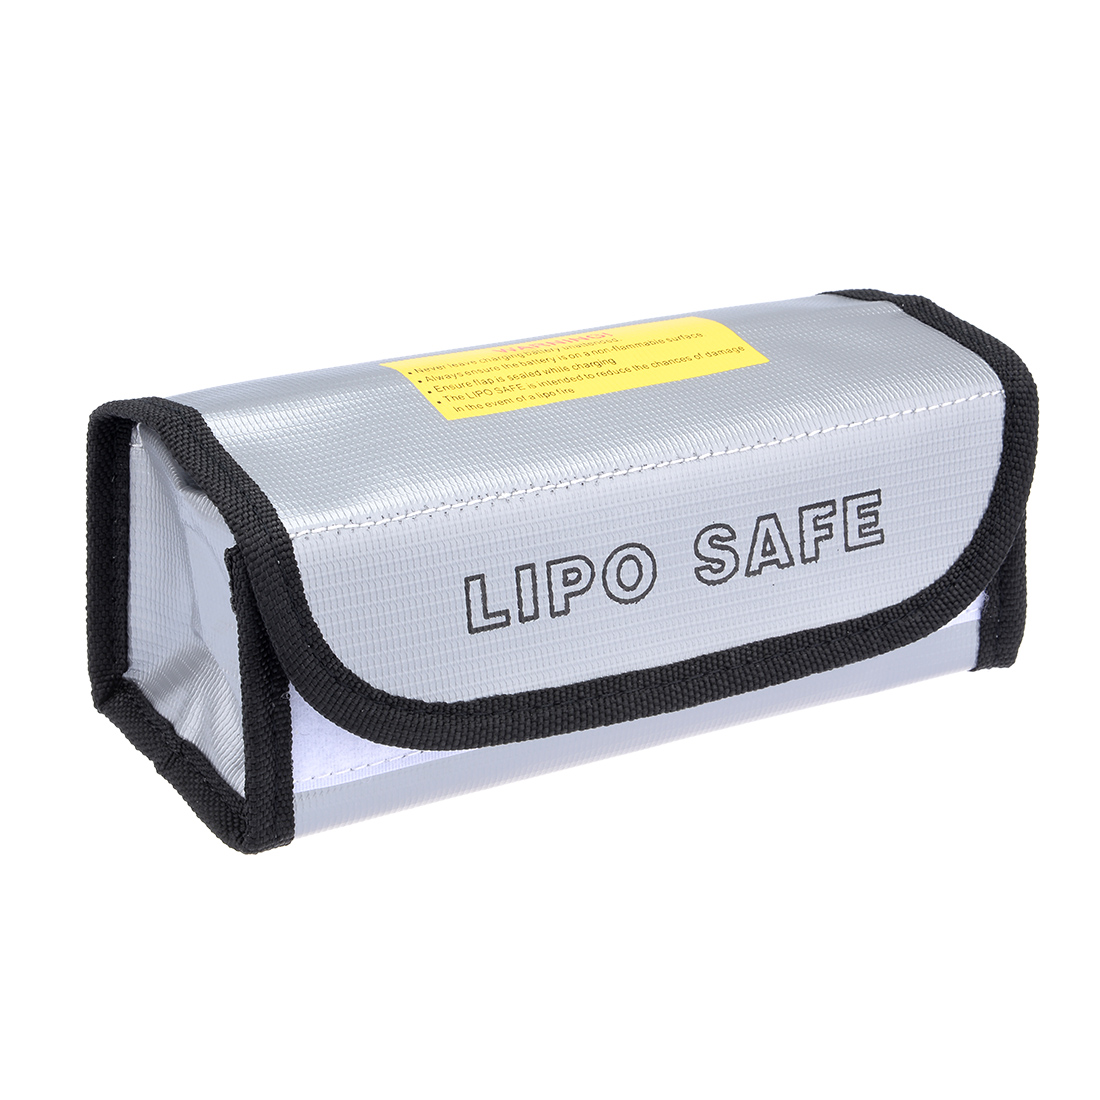 Lipo Battery Fireproof Explosionproof Bag Storage Guard Safe Charging Holder 185mm x 75mm x 60mm